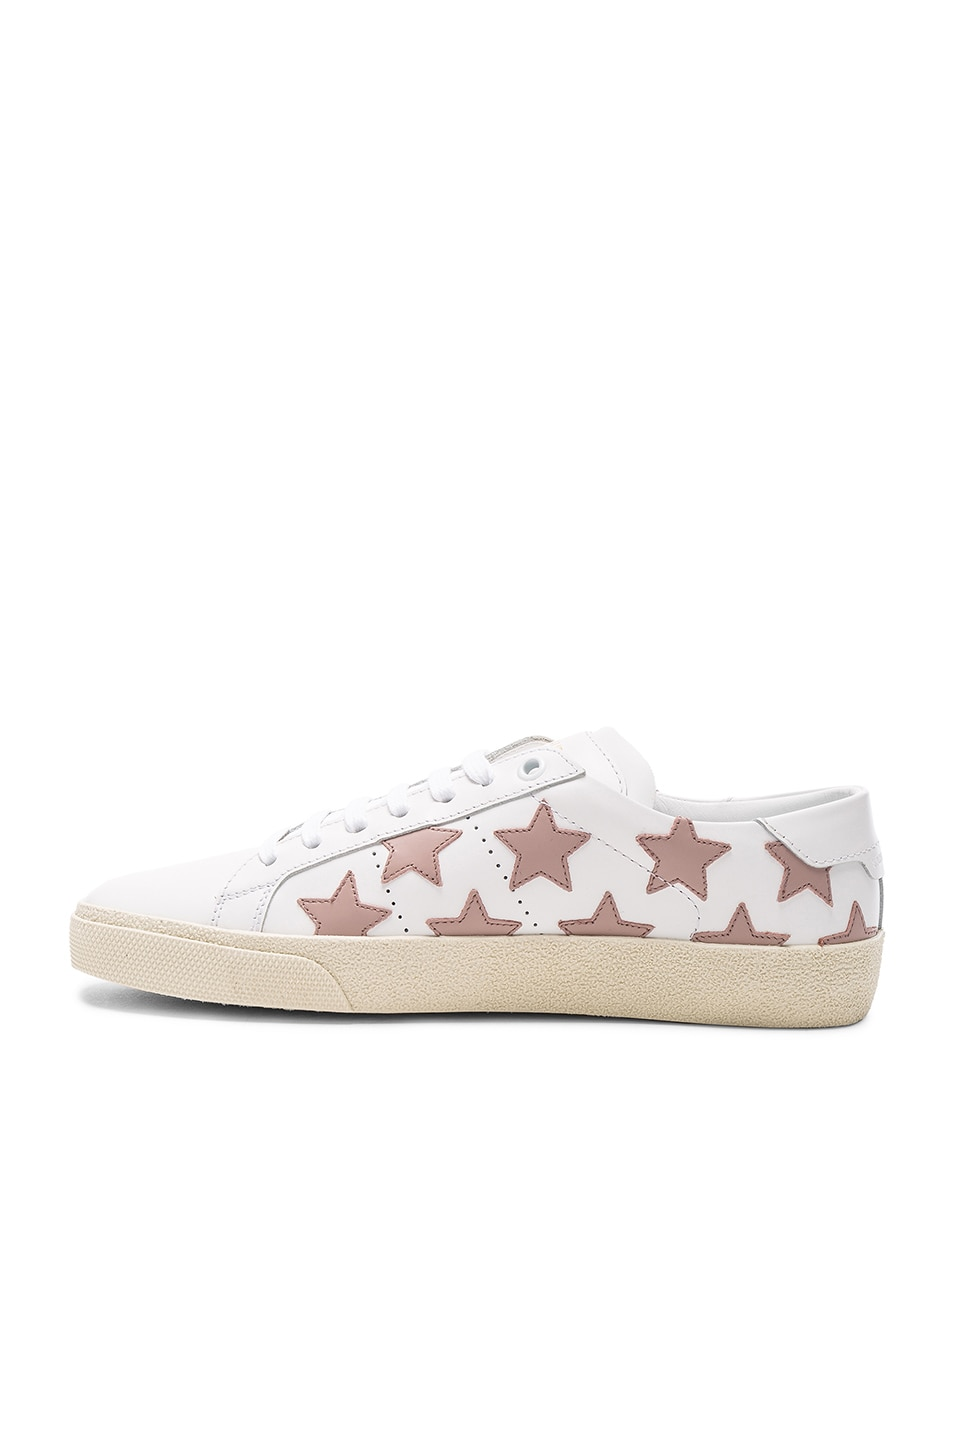 Image 5 of Saint Laurent Leather Court Classic Star Sneakers in Off White & Rose Antic